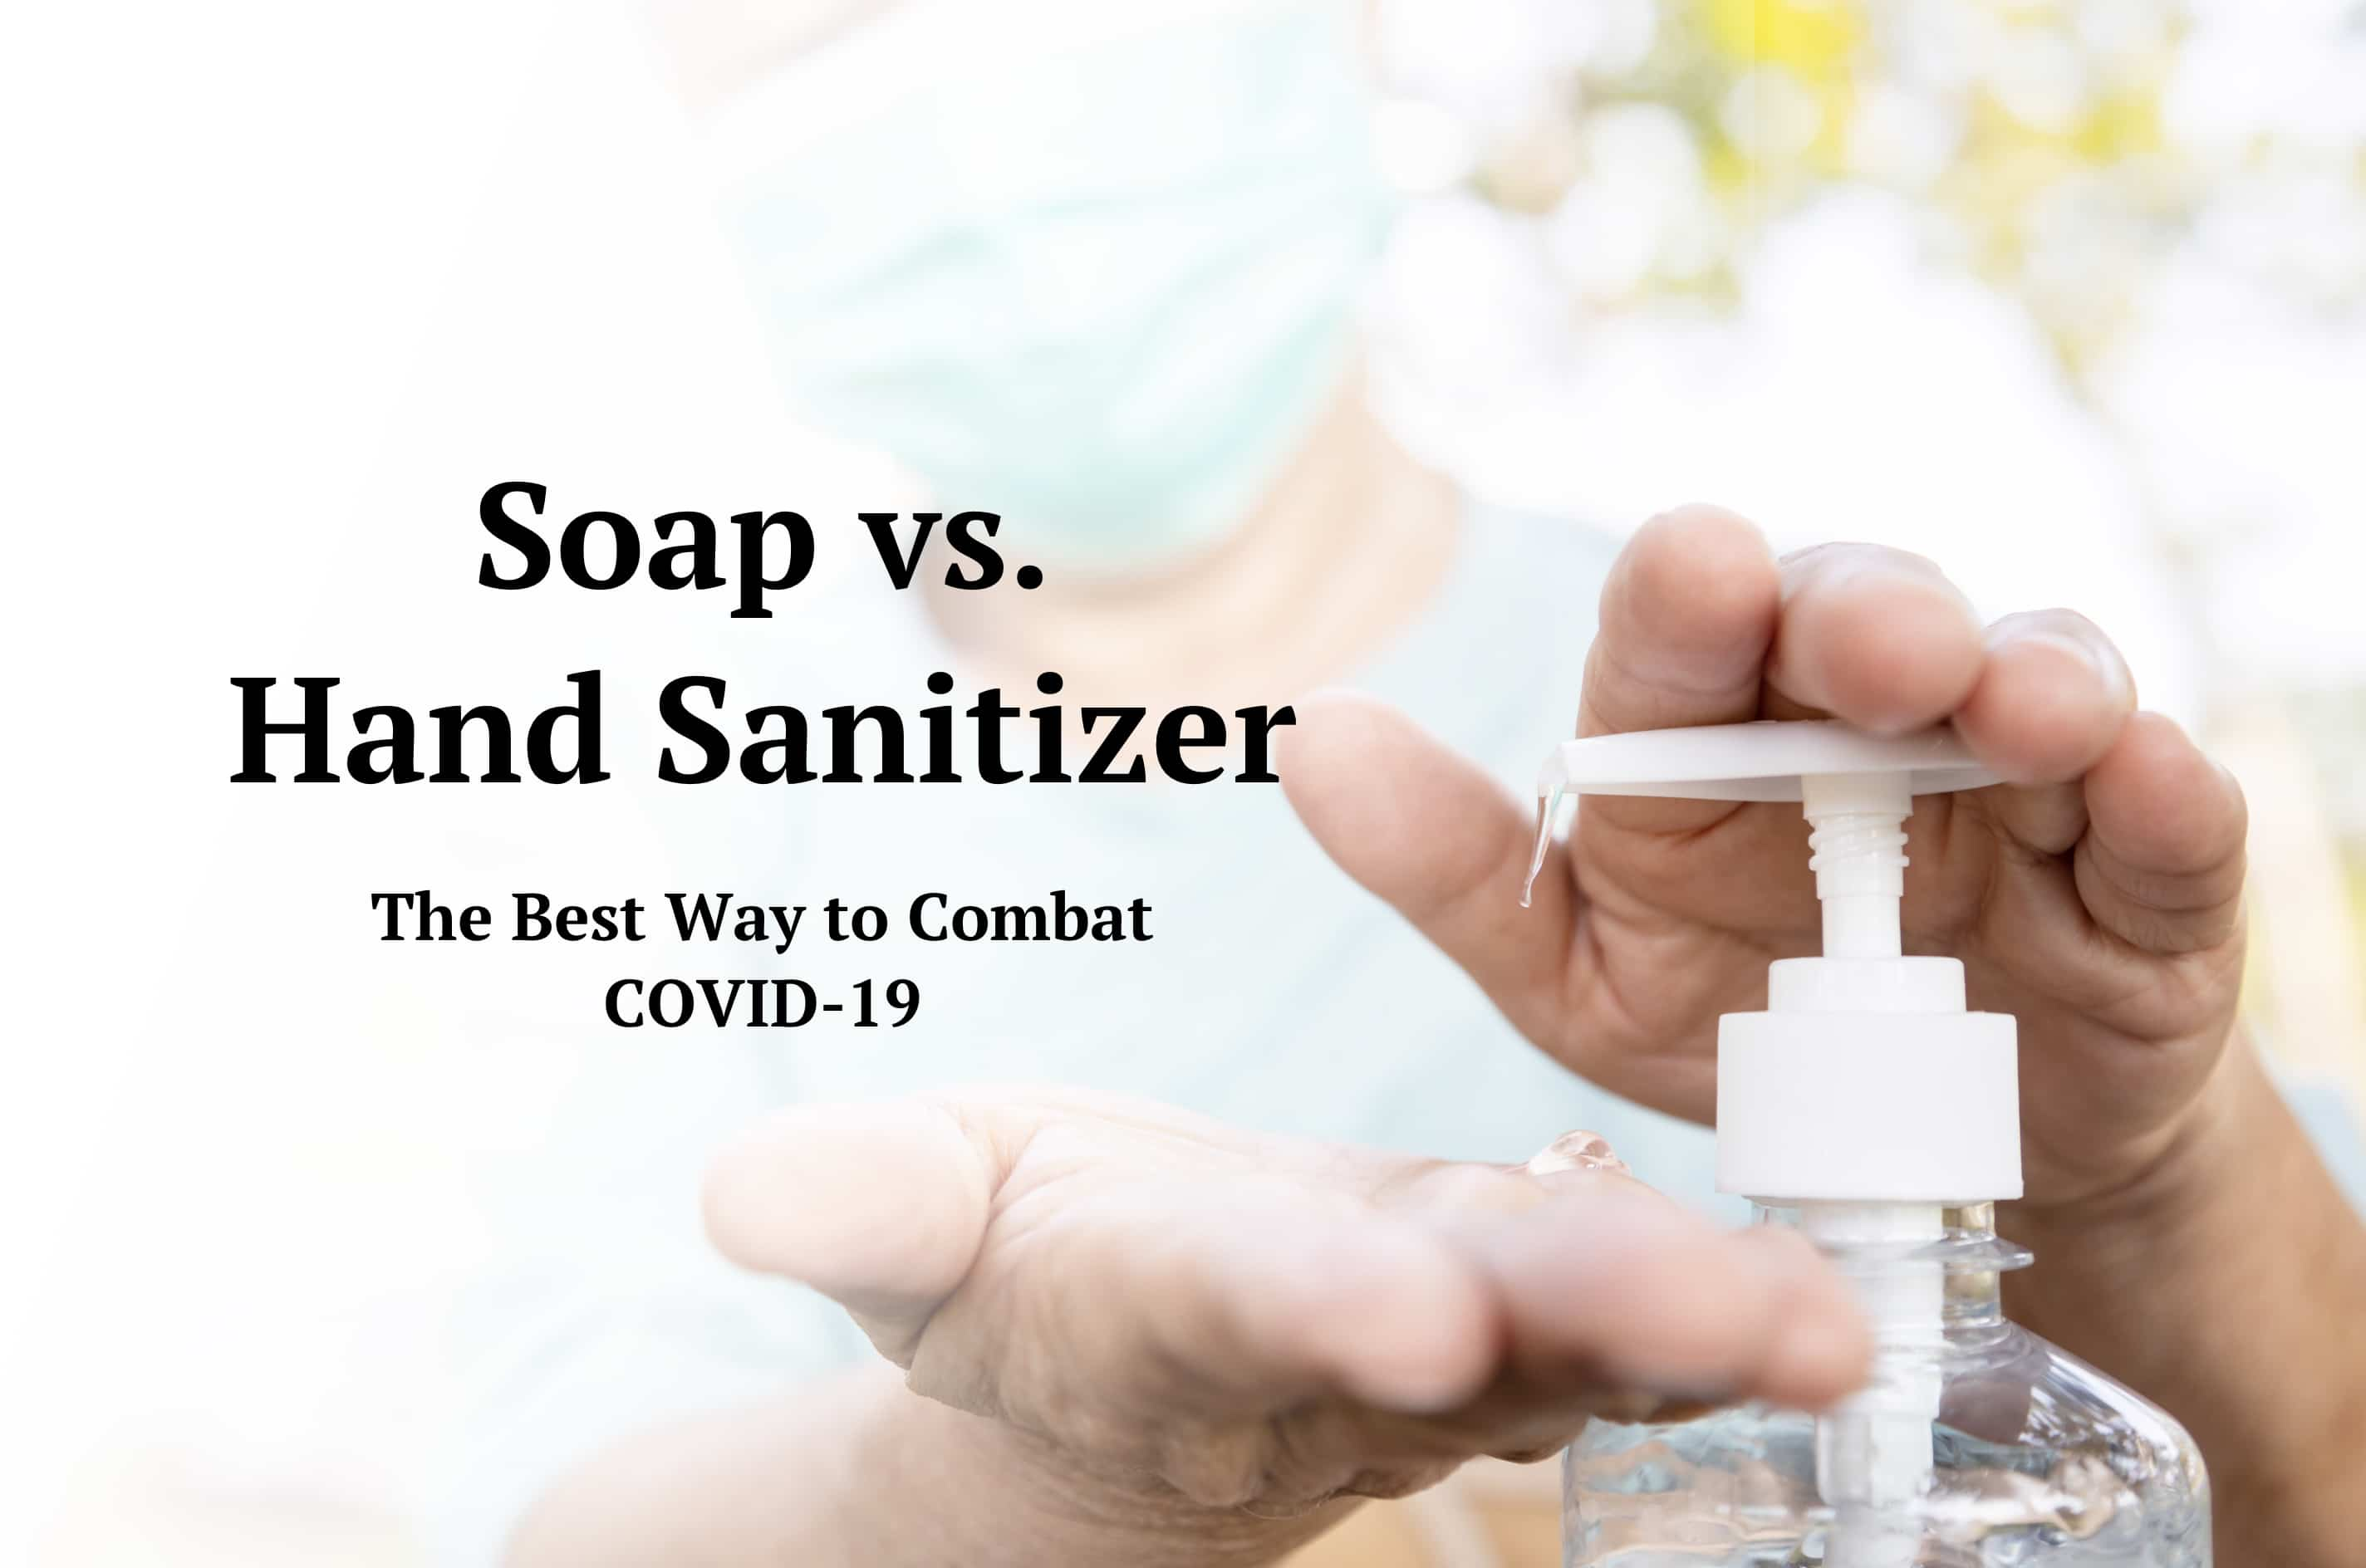 Soap vs. Hand Sanitizer: The Best Way to Combat COVID-19